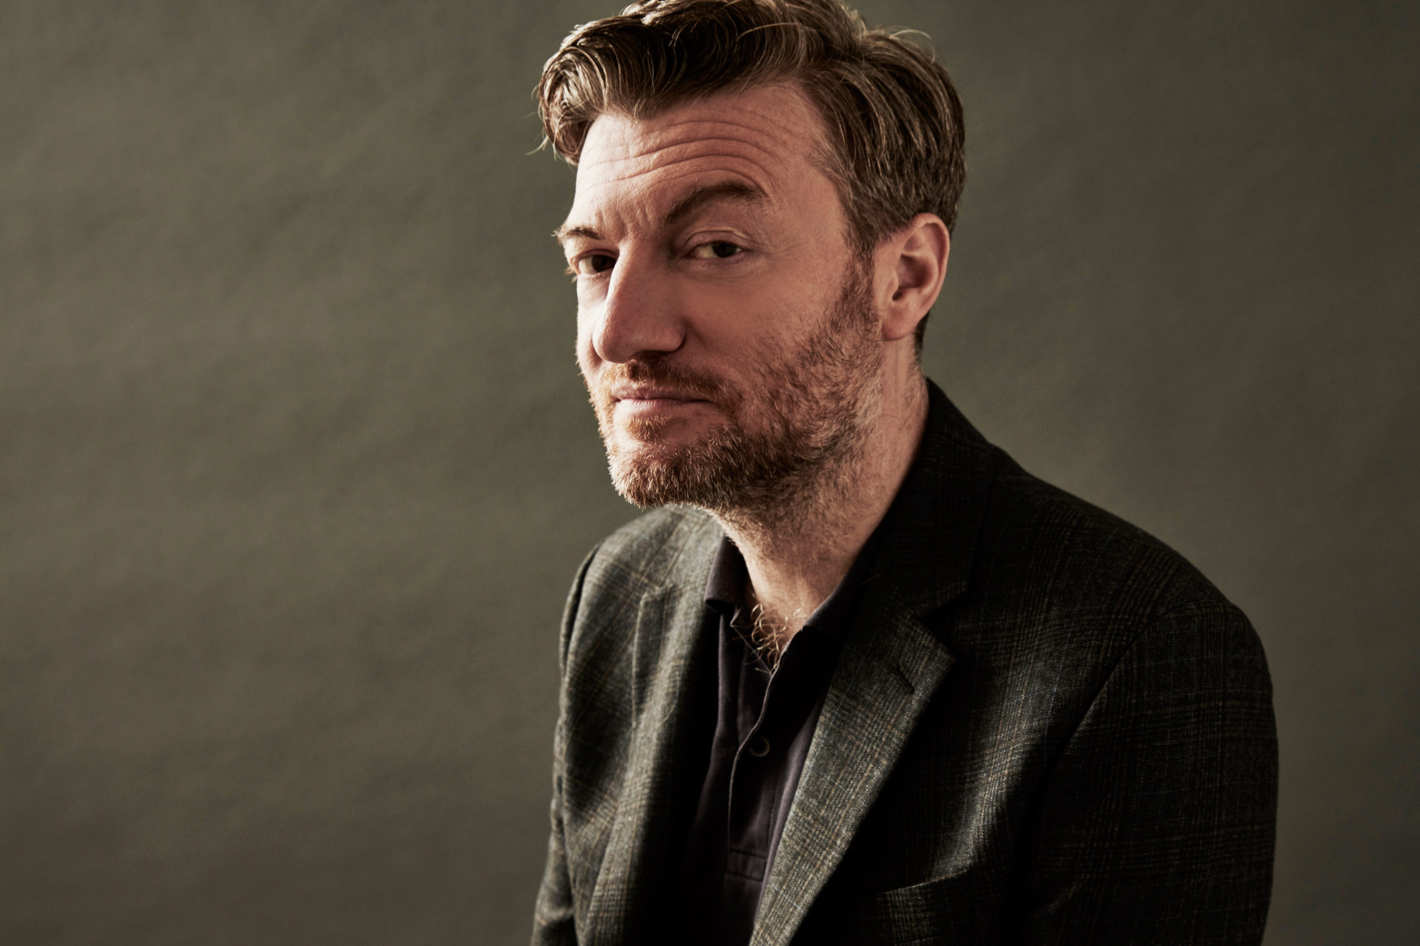 Charlie Brooker - Missed a trick not writing a drone mail black mirror episode